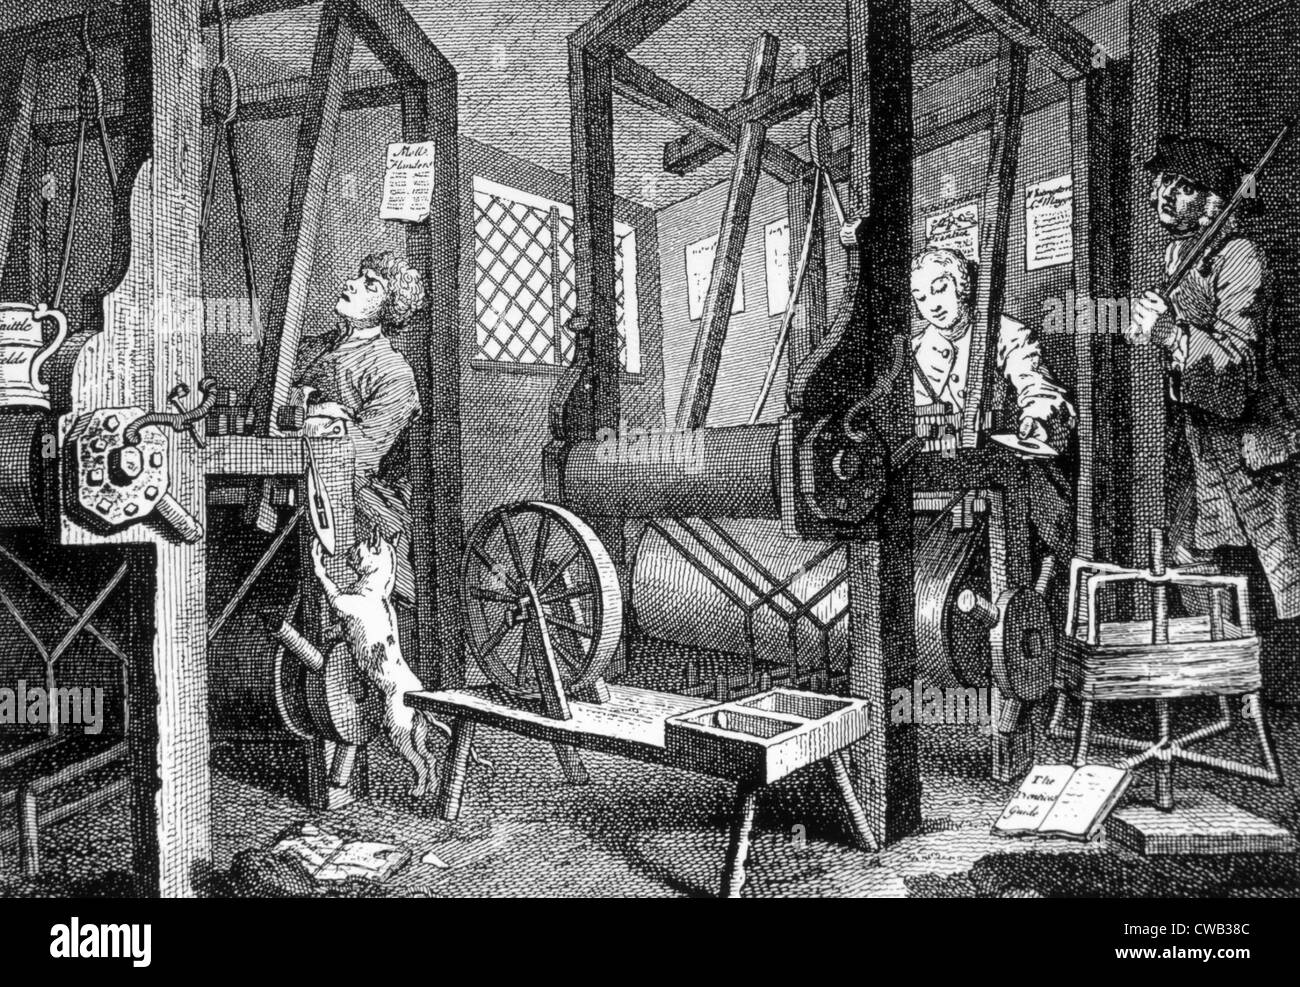 Weaving at Spitalfields, England, 'Industry and Idleness' engraving by William Hogarth circa 1780, - Stock Image